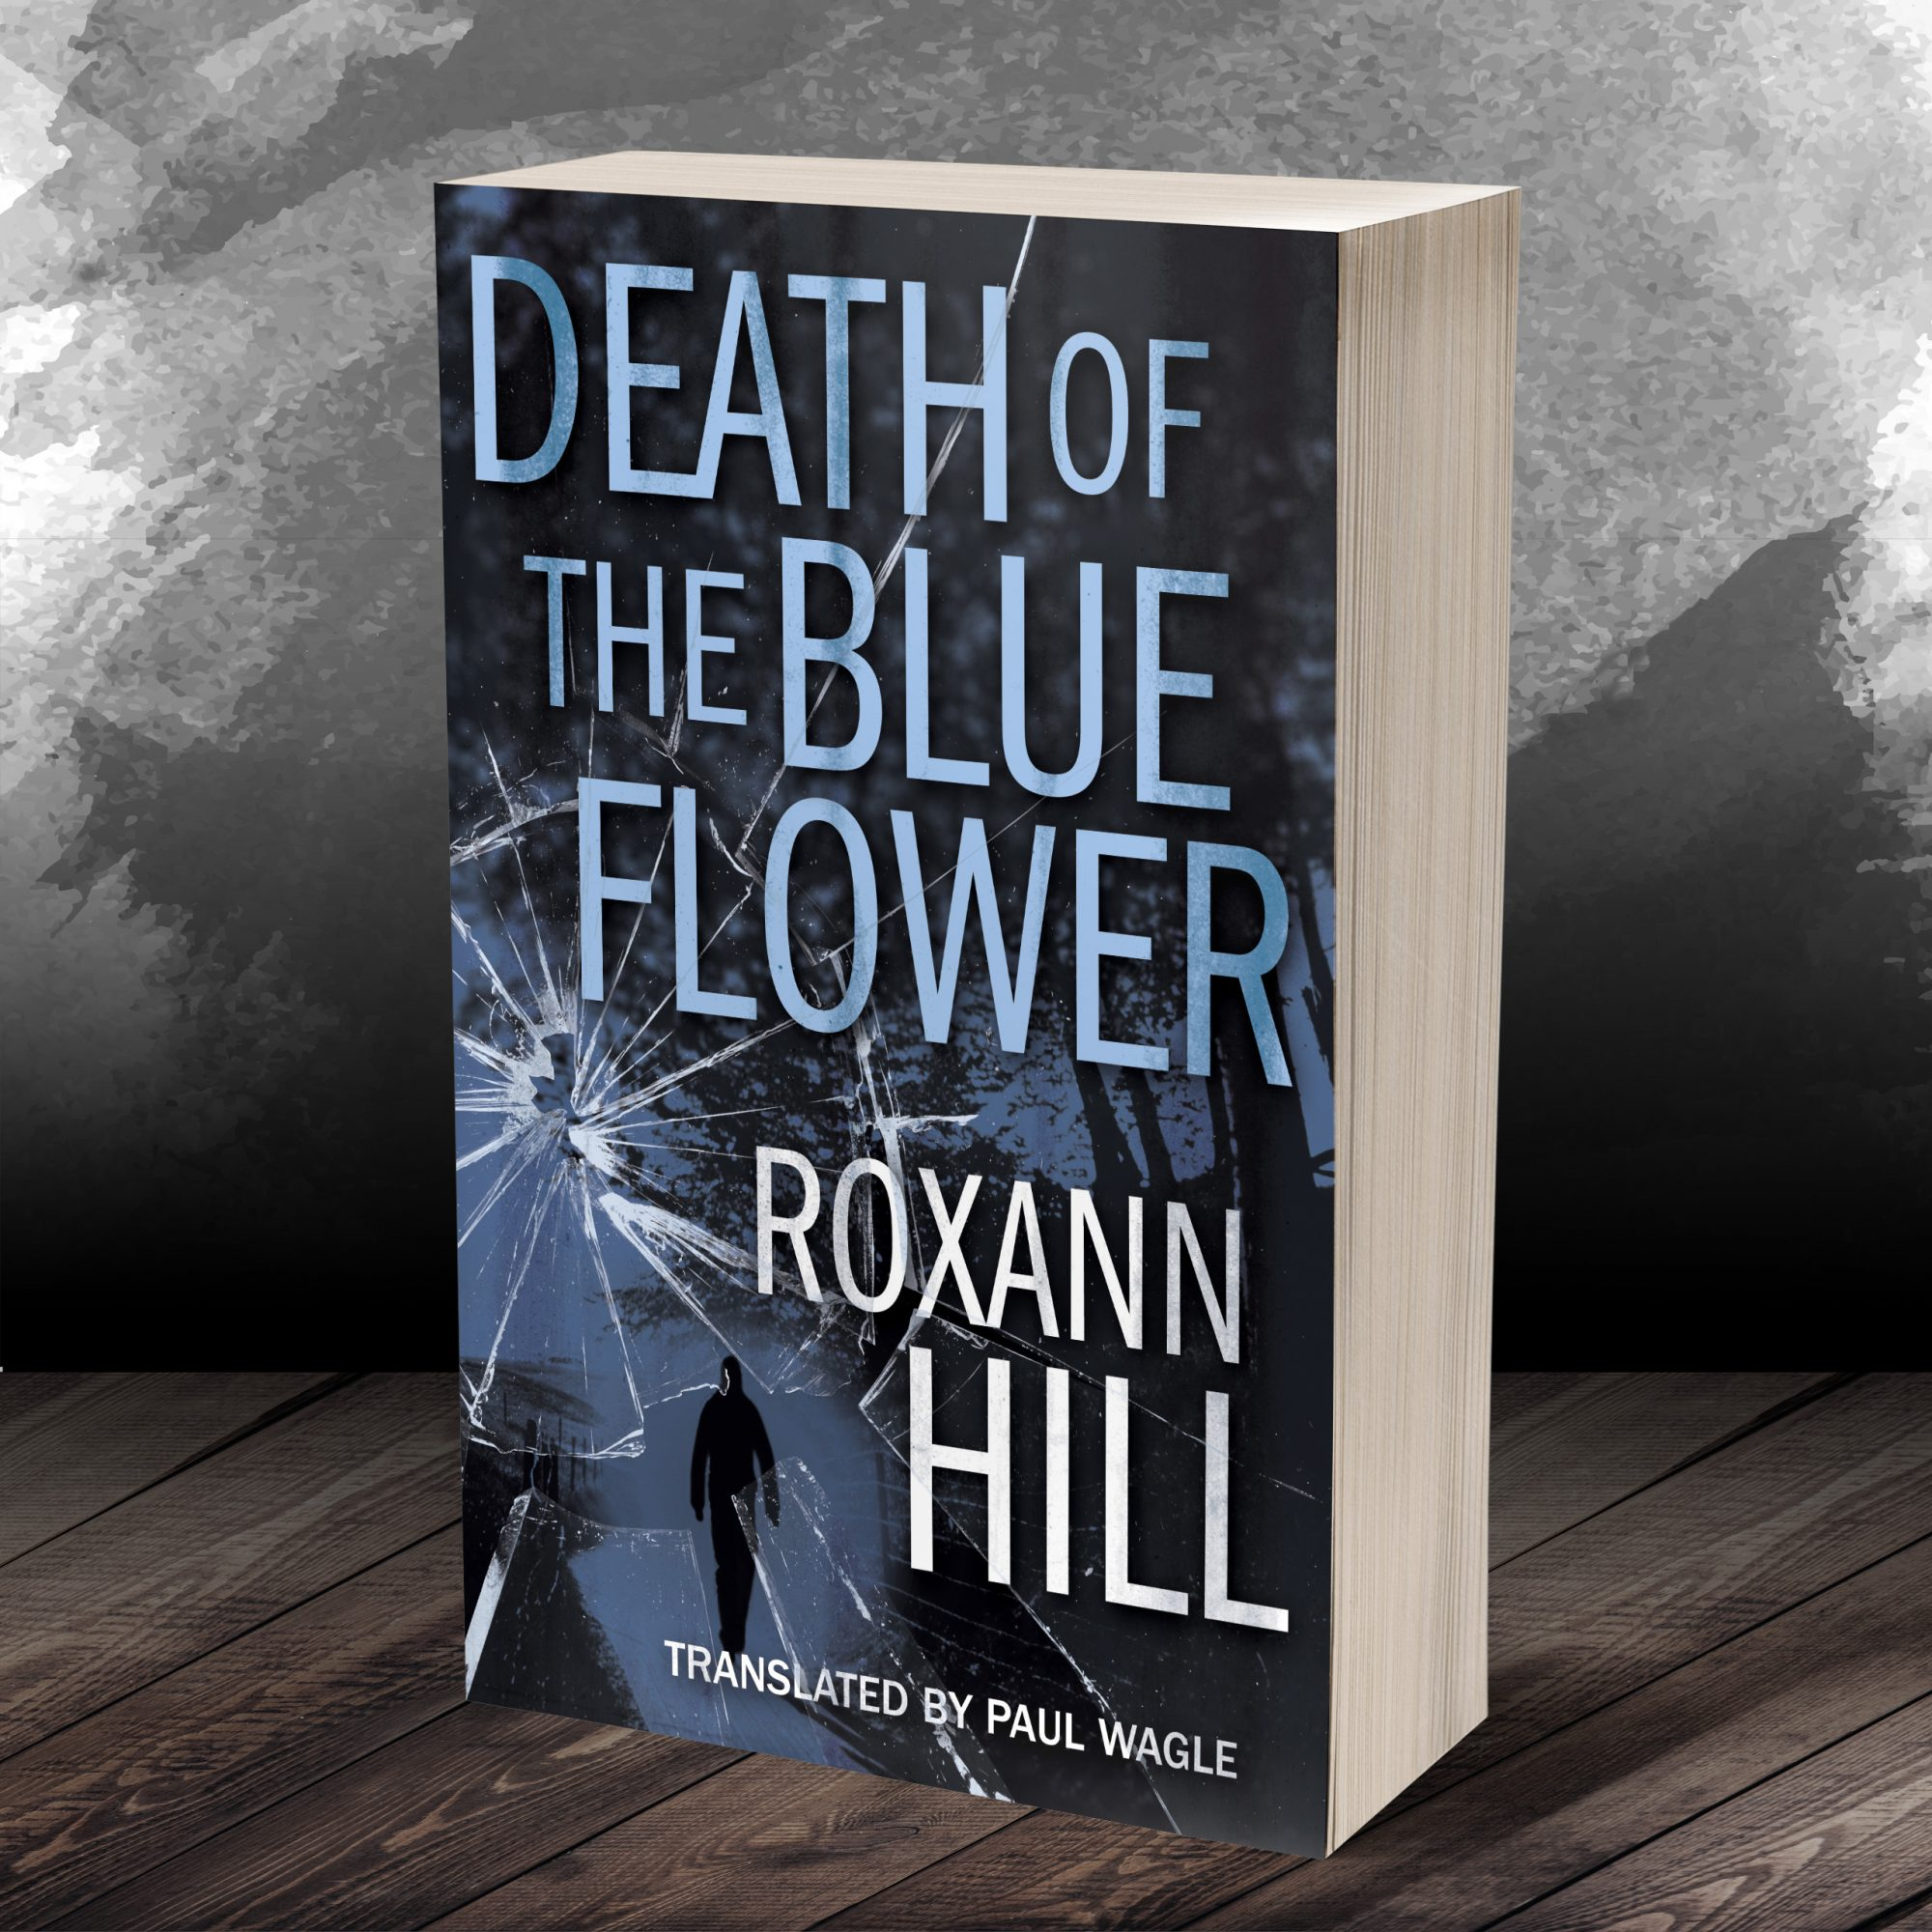 Roxan Hill: Death of the blue flower